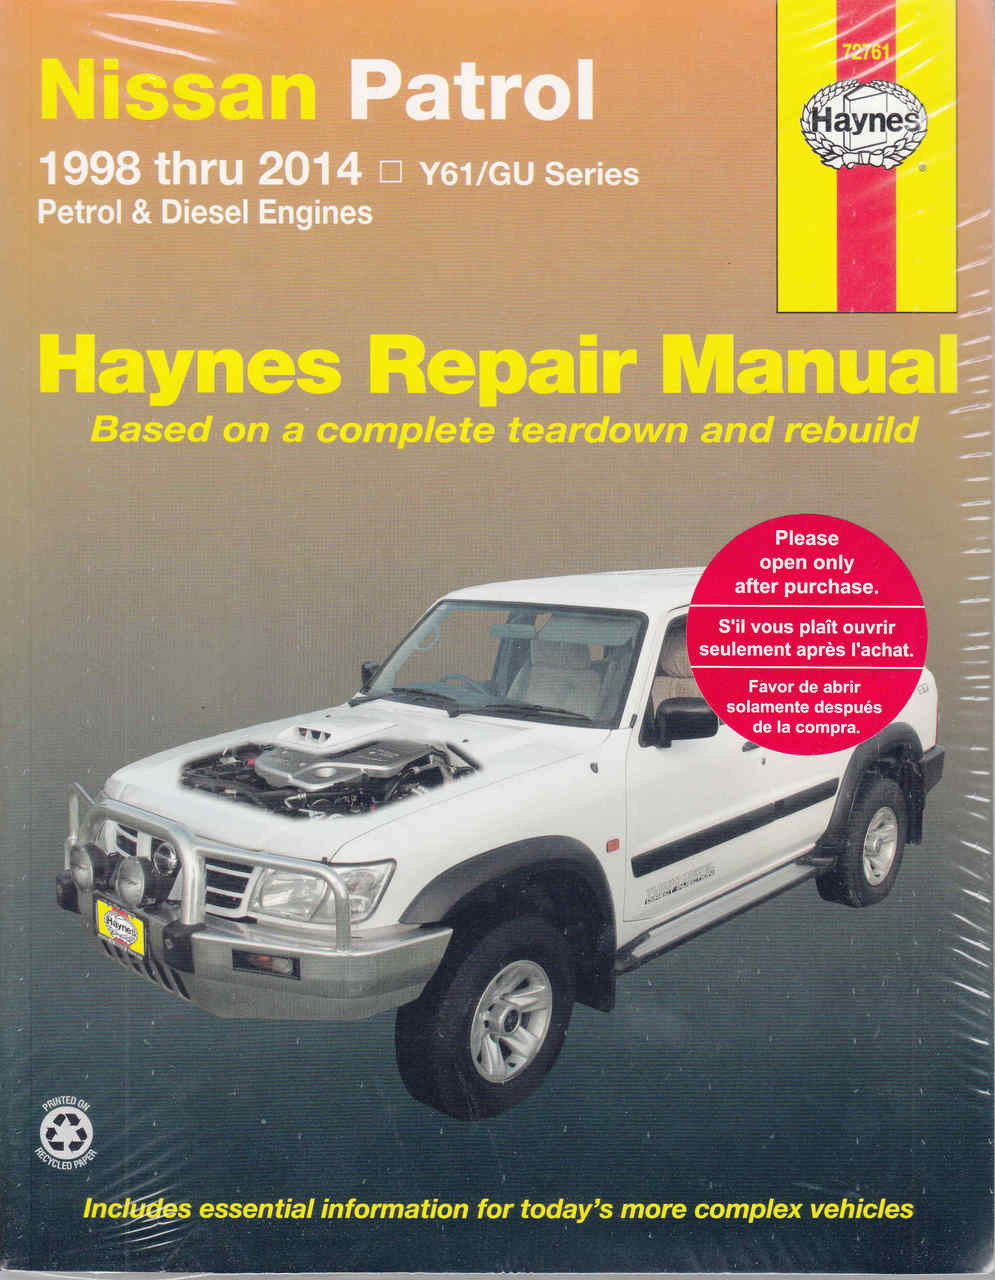 Nissan Patrol GU Series 1998 - 2014 Workshop Manual - front ...